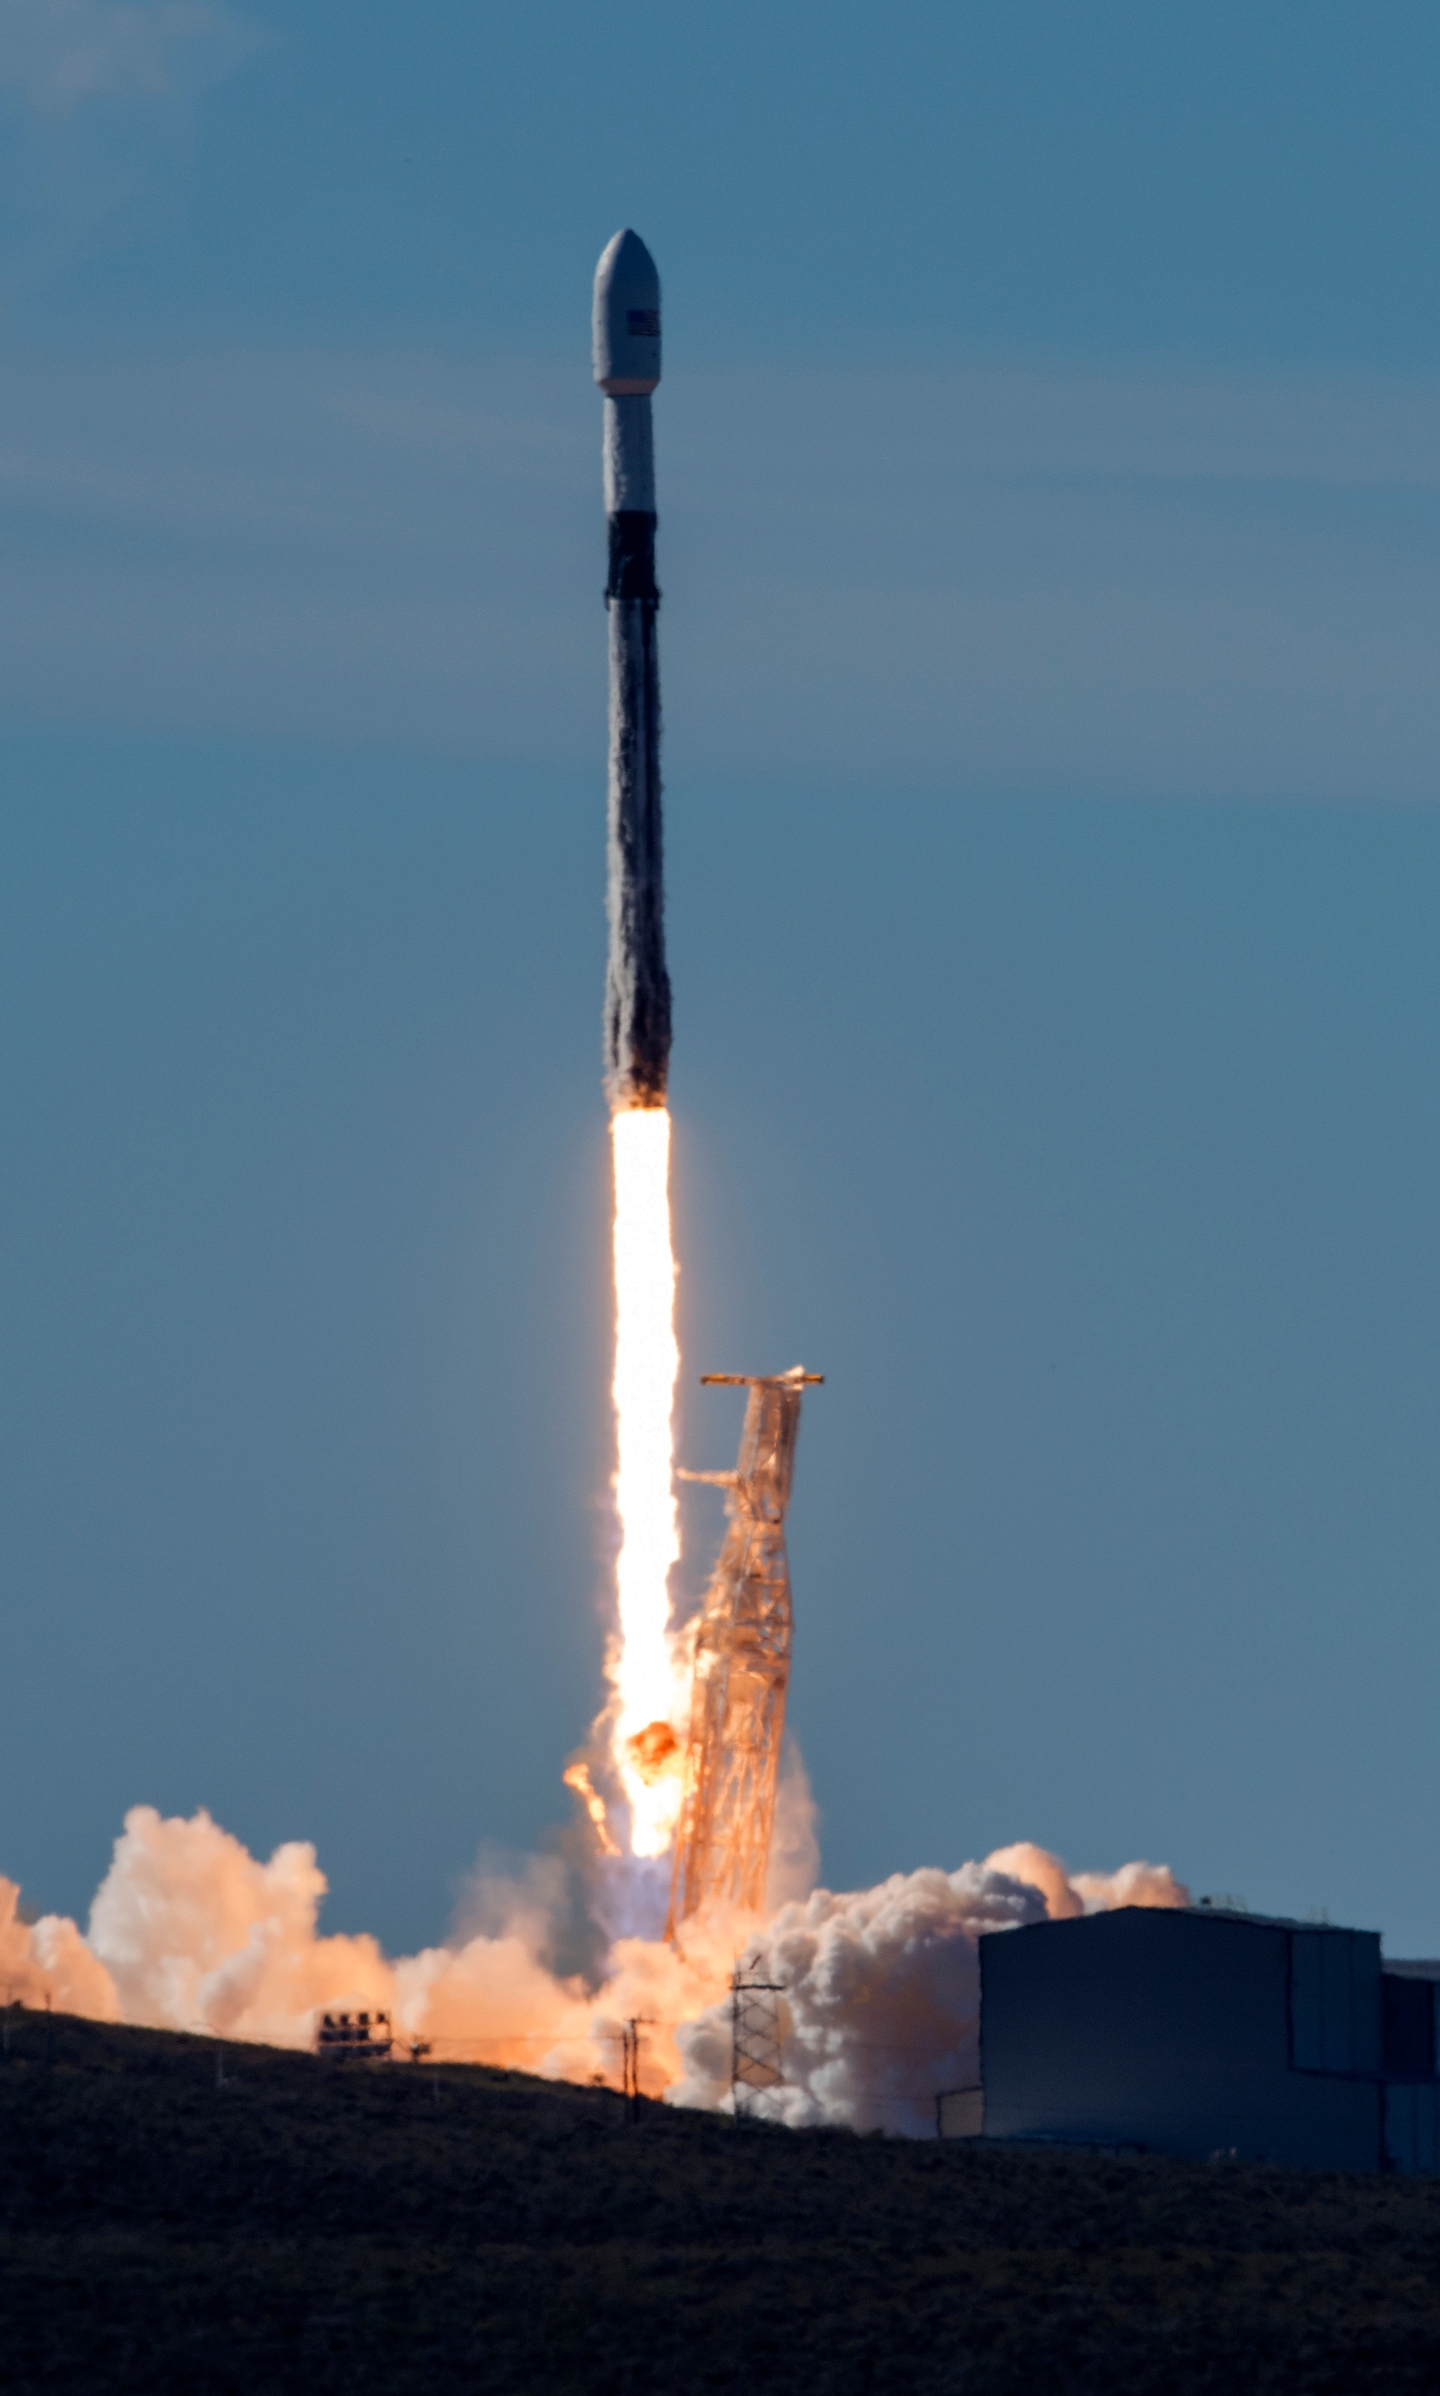 SpaceX_Launch_61440-159532.jpg89756547